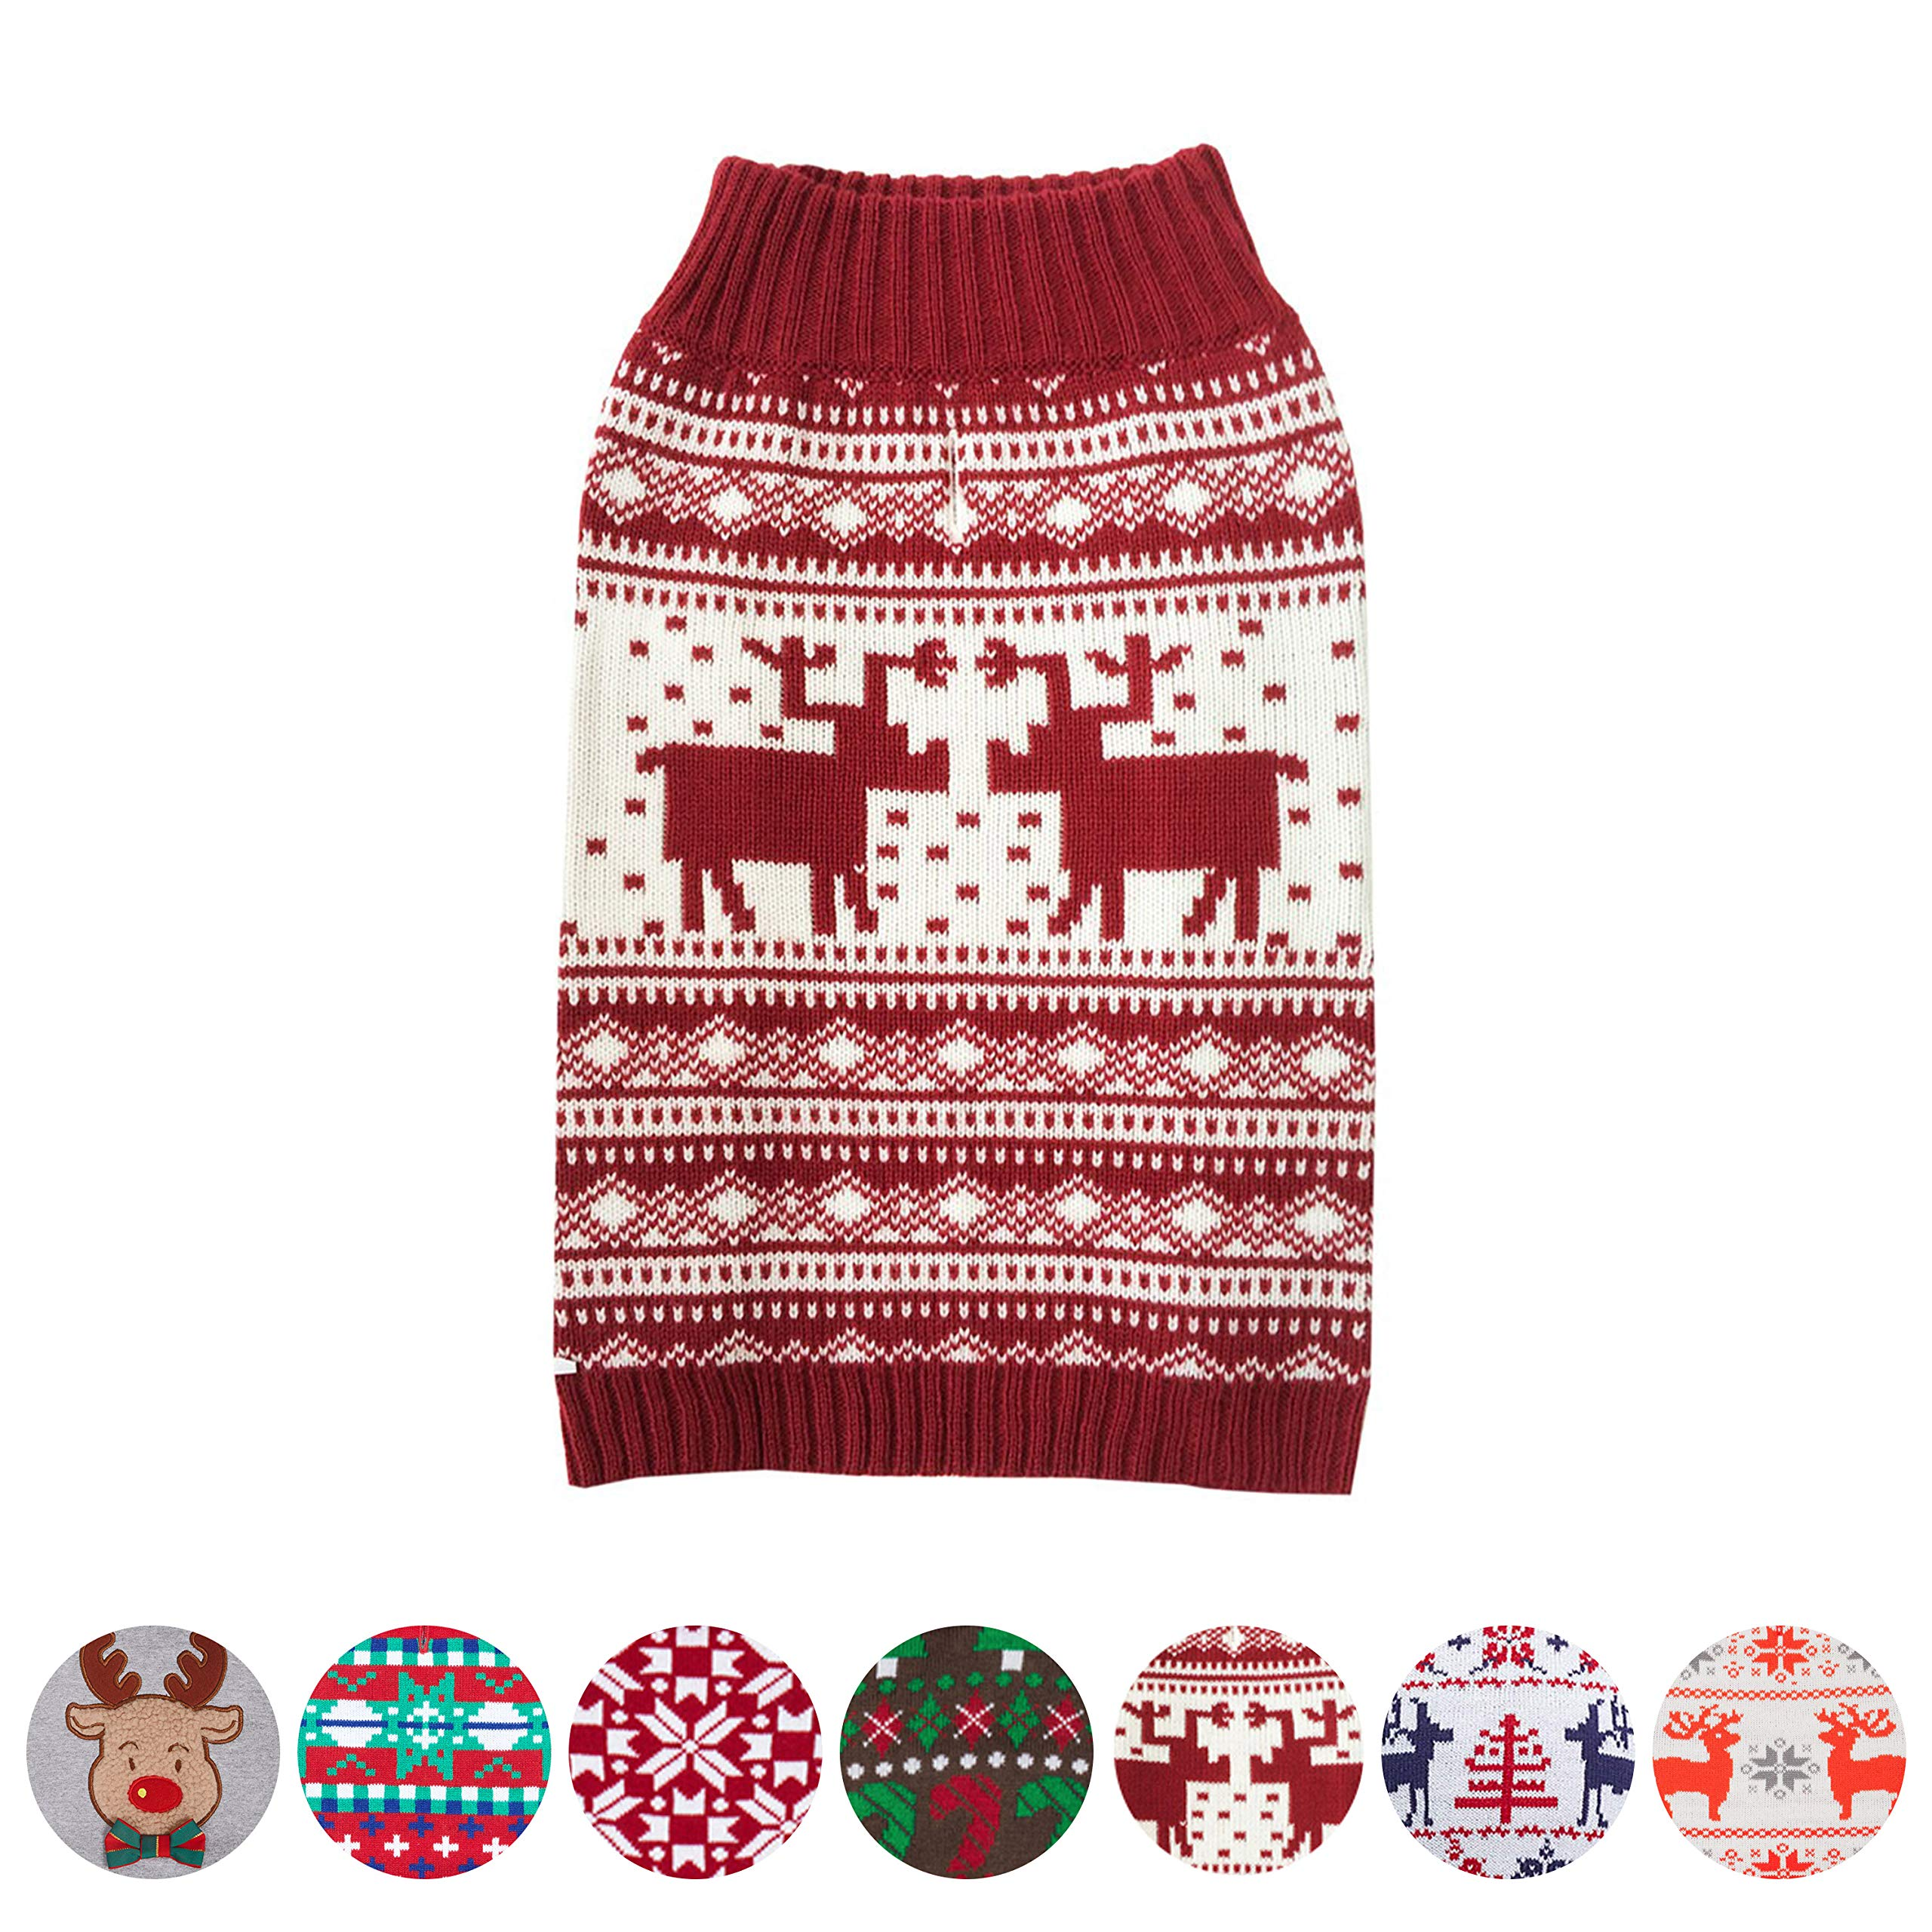 Blueberry Pet 6 Patterns Vintage Festive Red Ugly Christmas Reindeer Holiday Festive Dog Sweater, Back Length 14'', Pack of 1 Clothes for Dogs